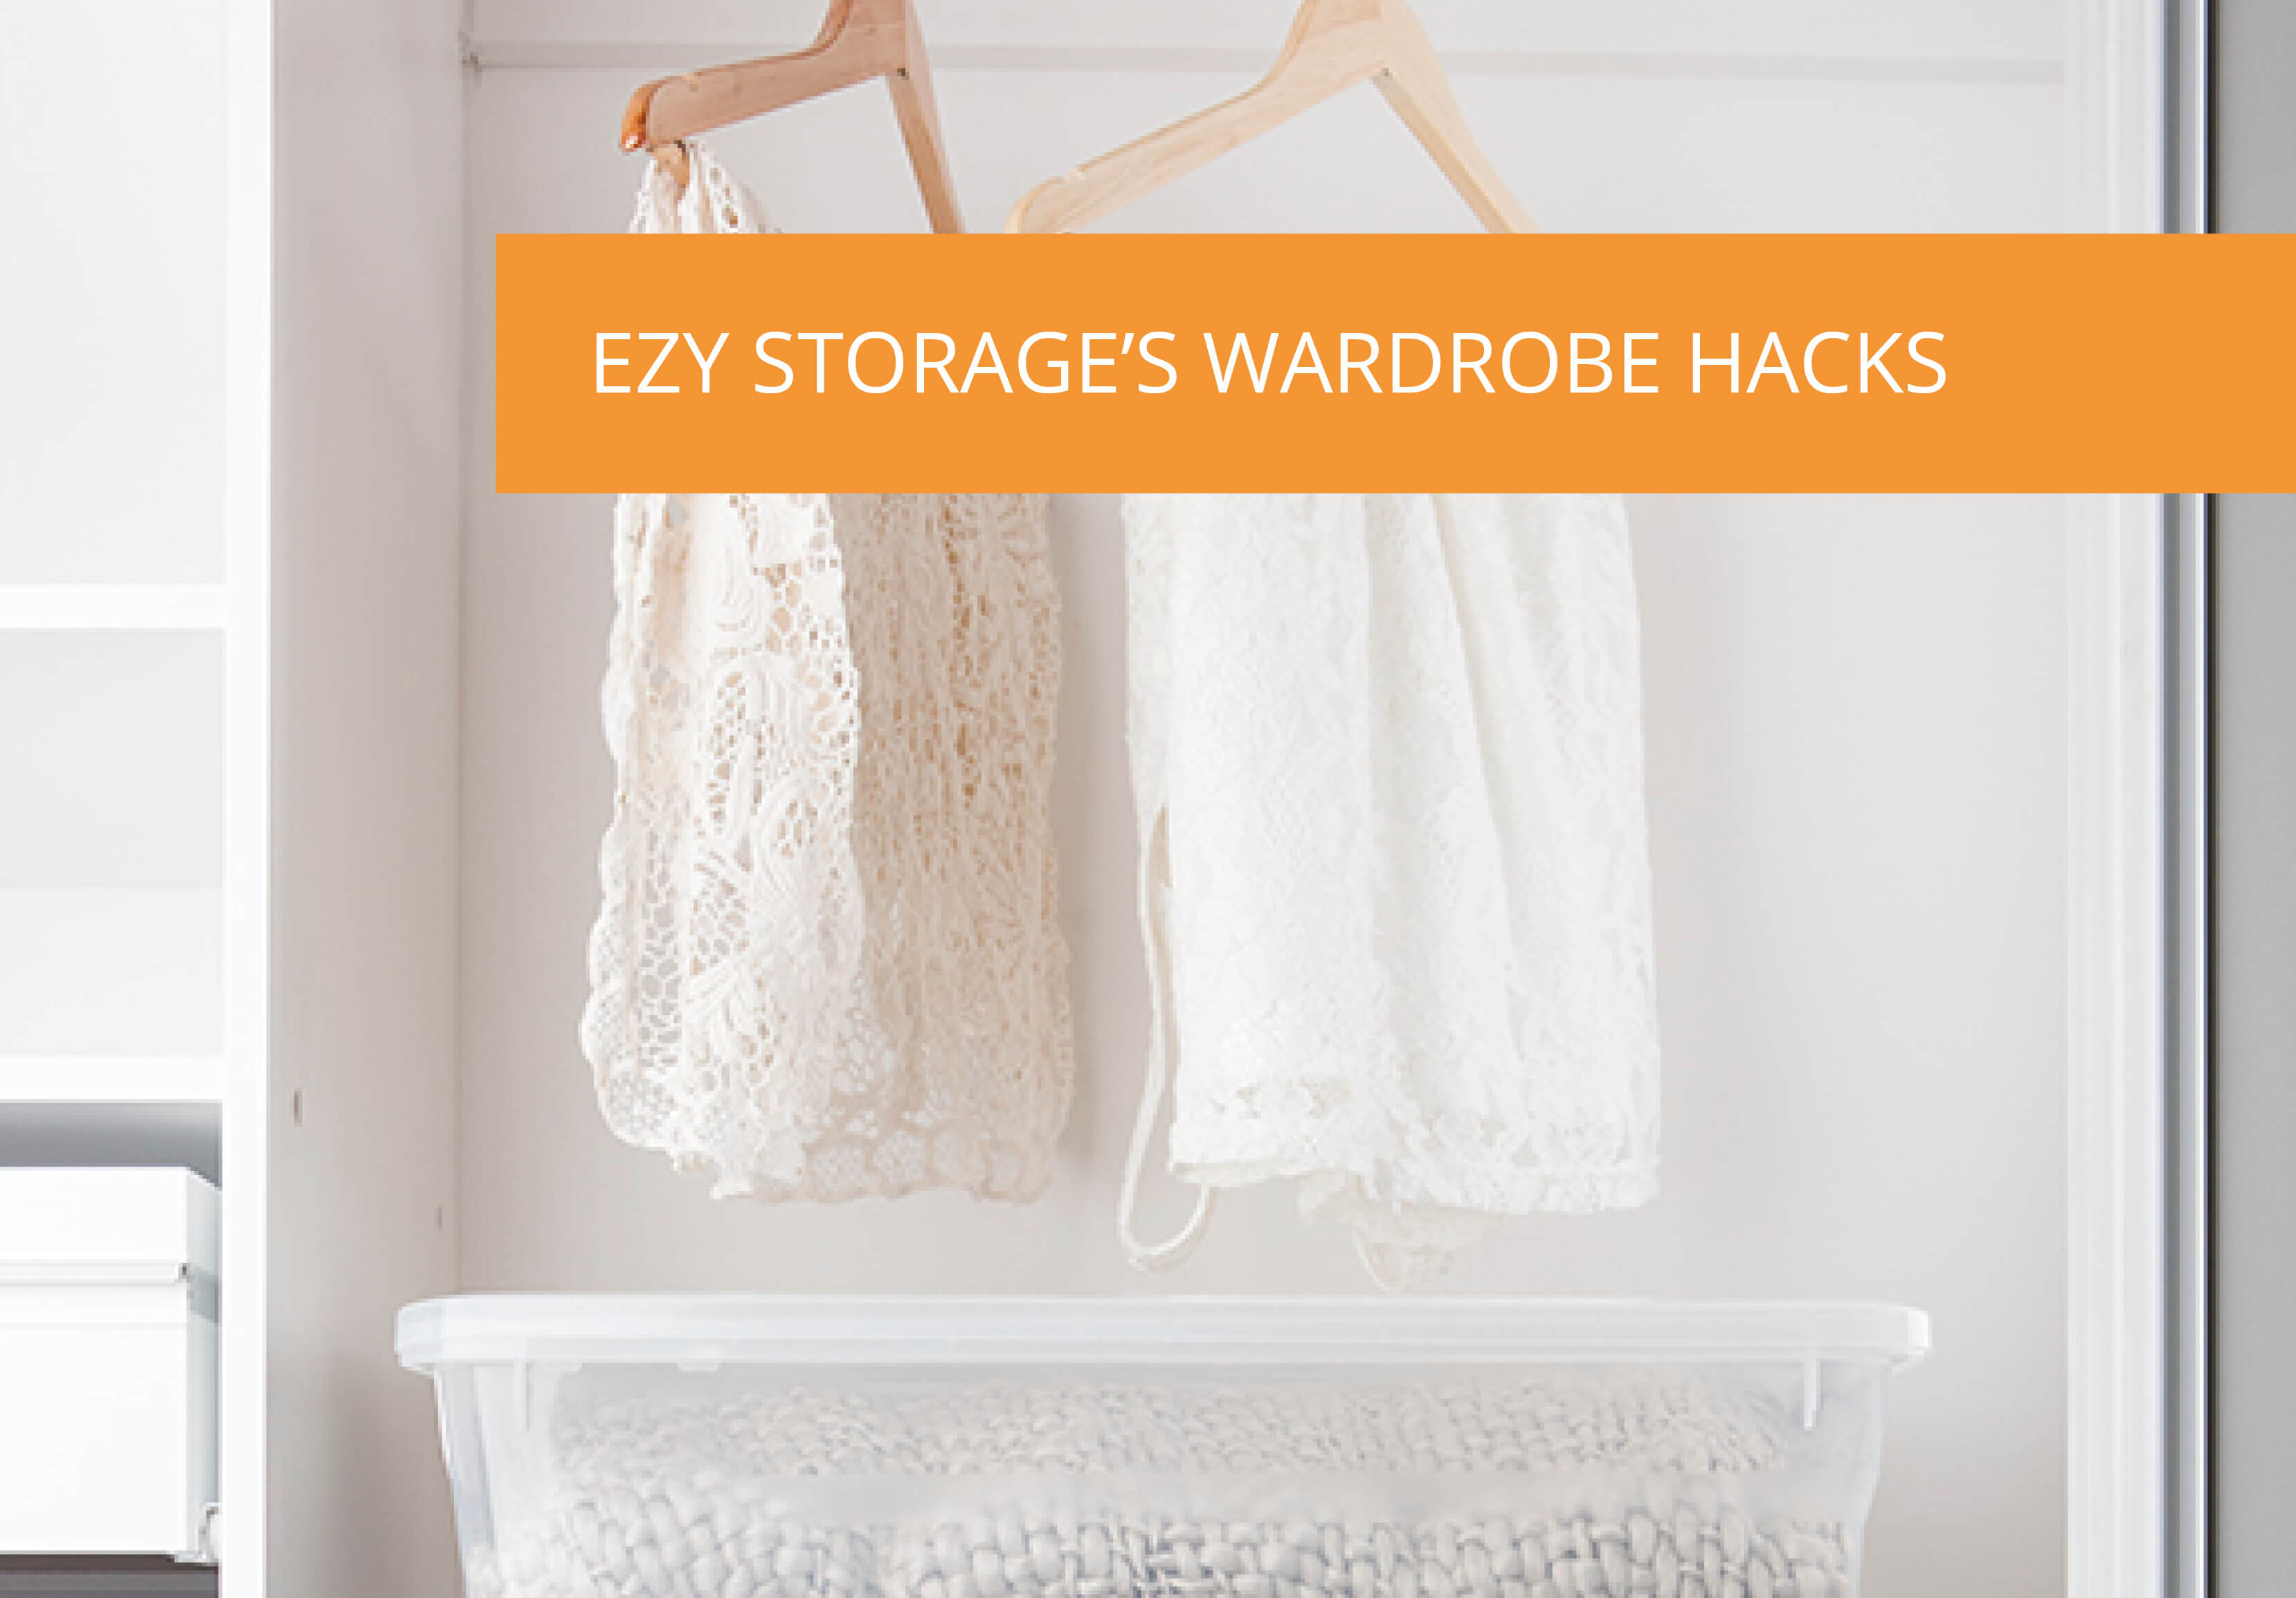 Ezy Storage's Wardrobe Hacks